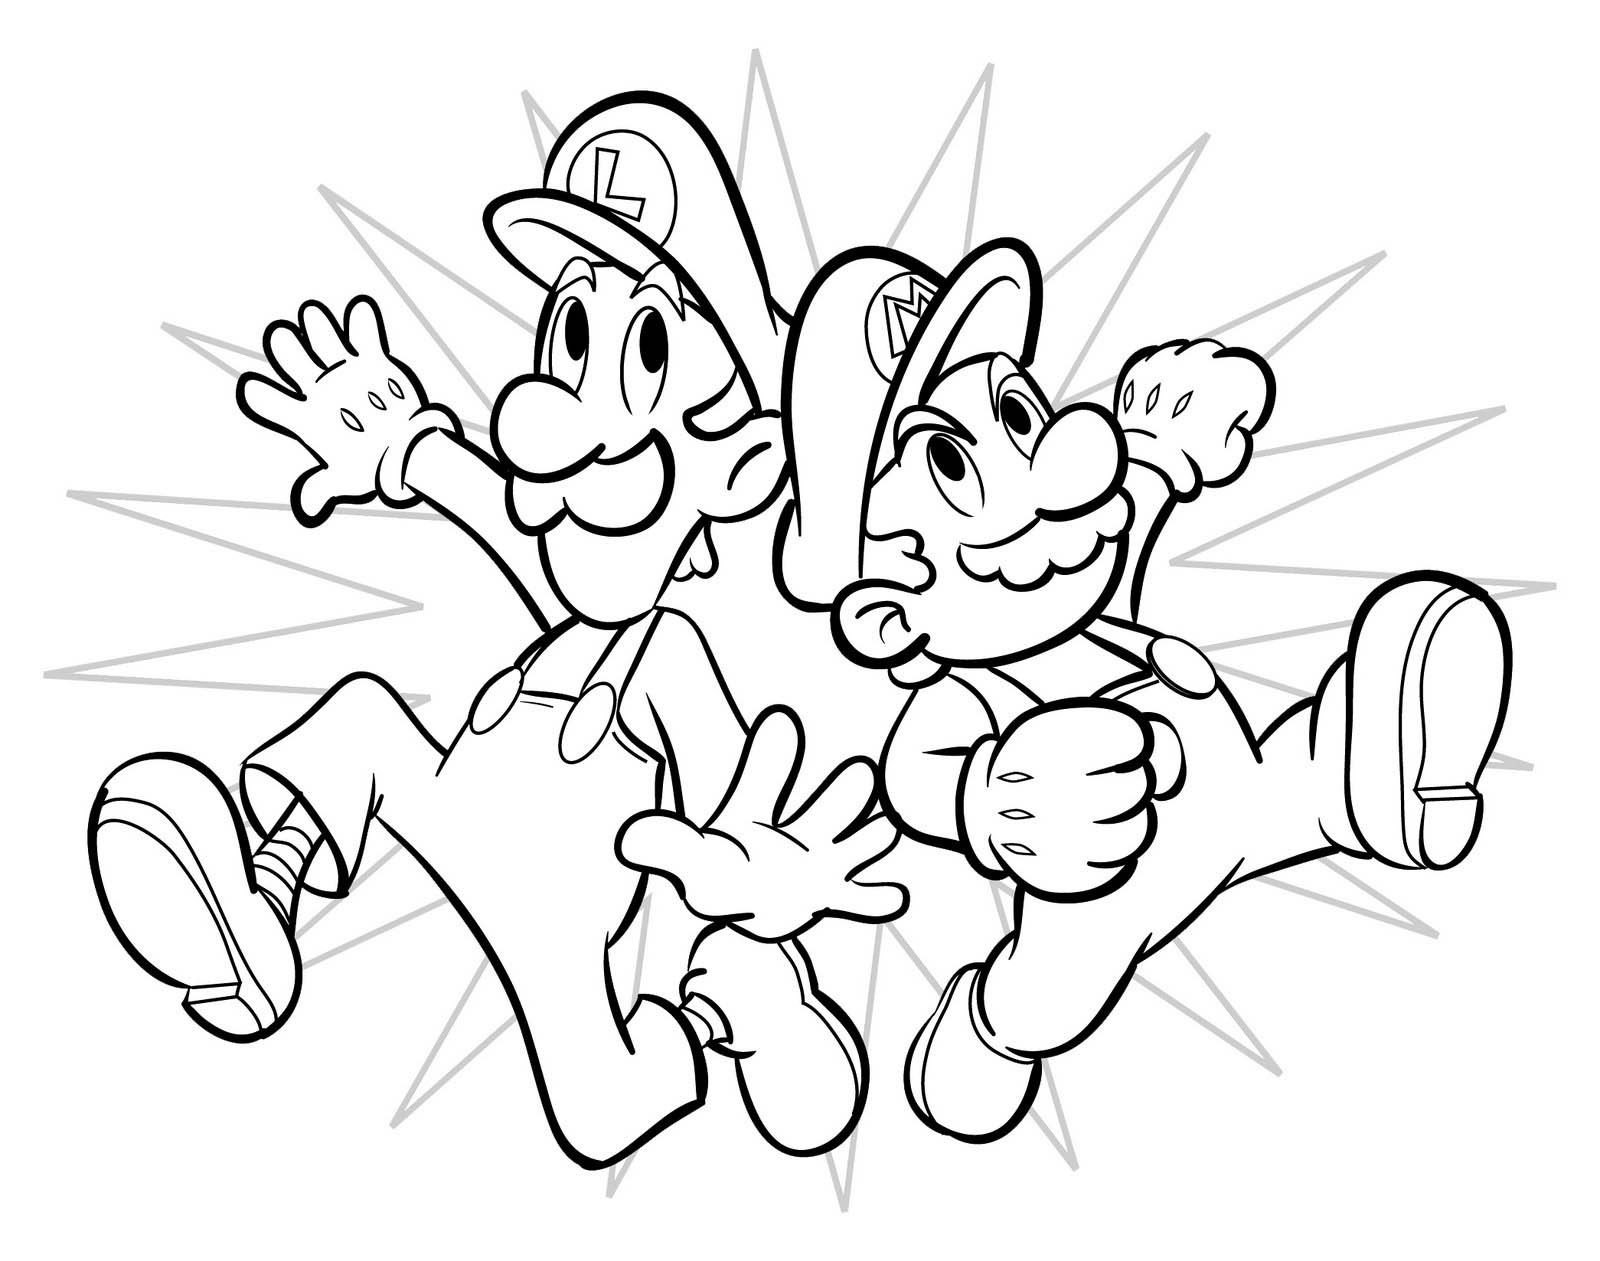 free printable mario coloring pages for kids - Coloring Pages For Kids Printable